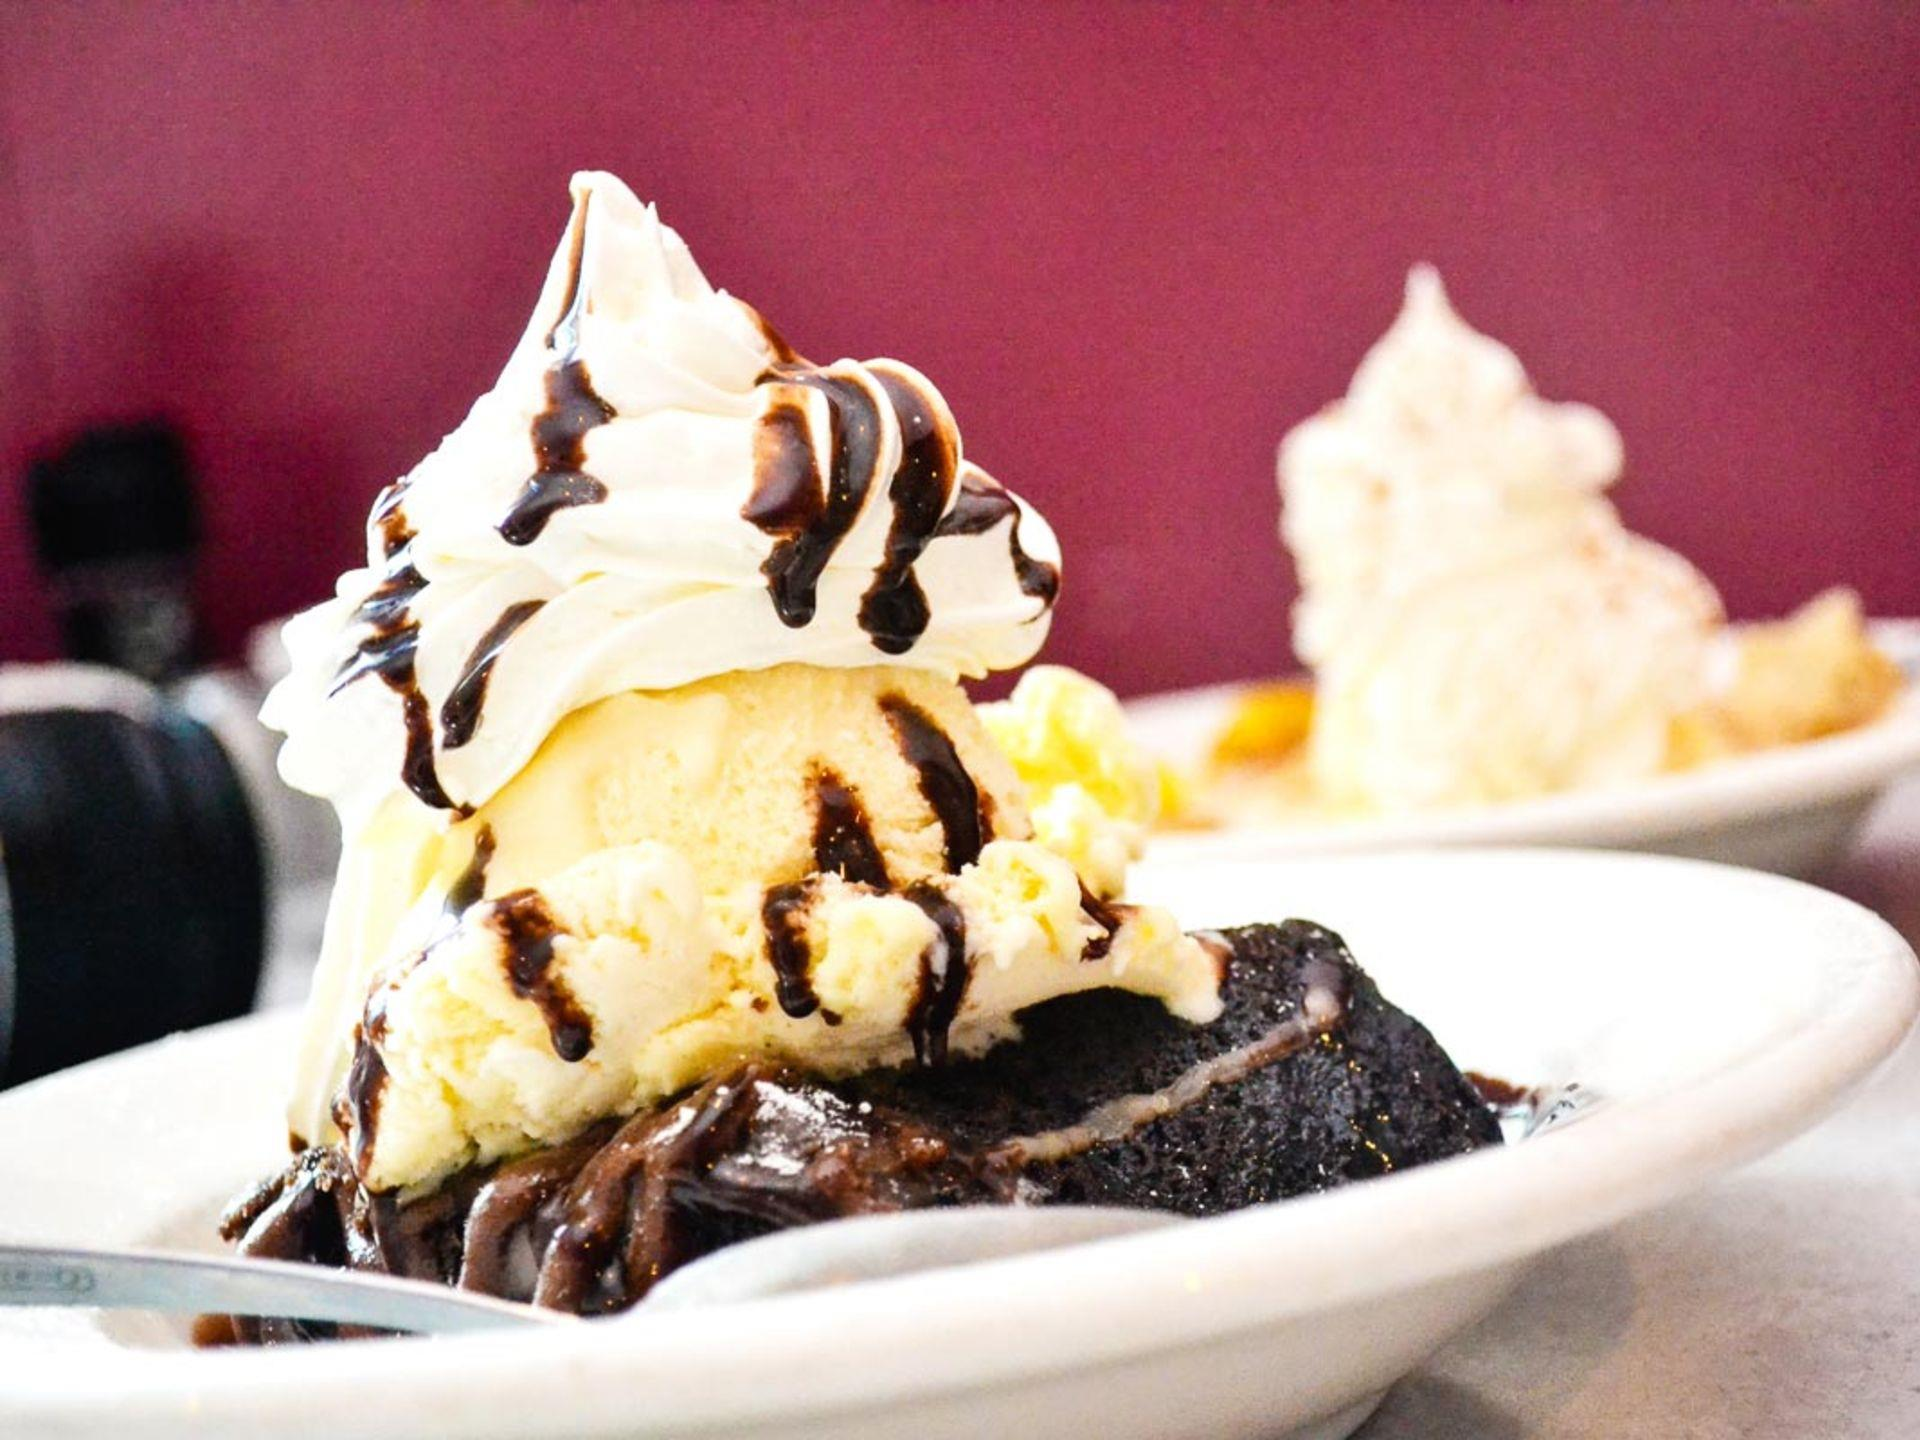 warm brownie dessert topped with ice cream and whipped cream with chocolate syrup